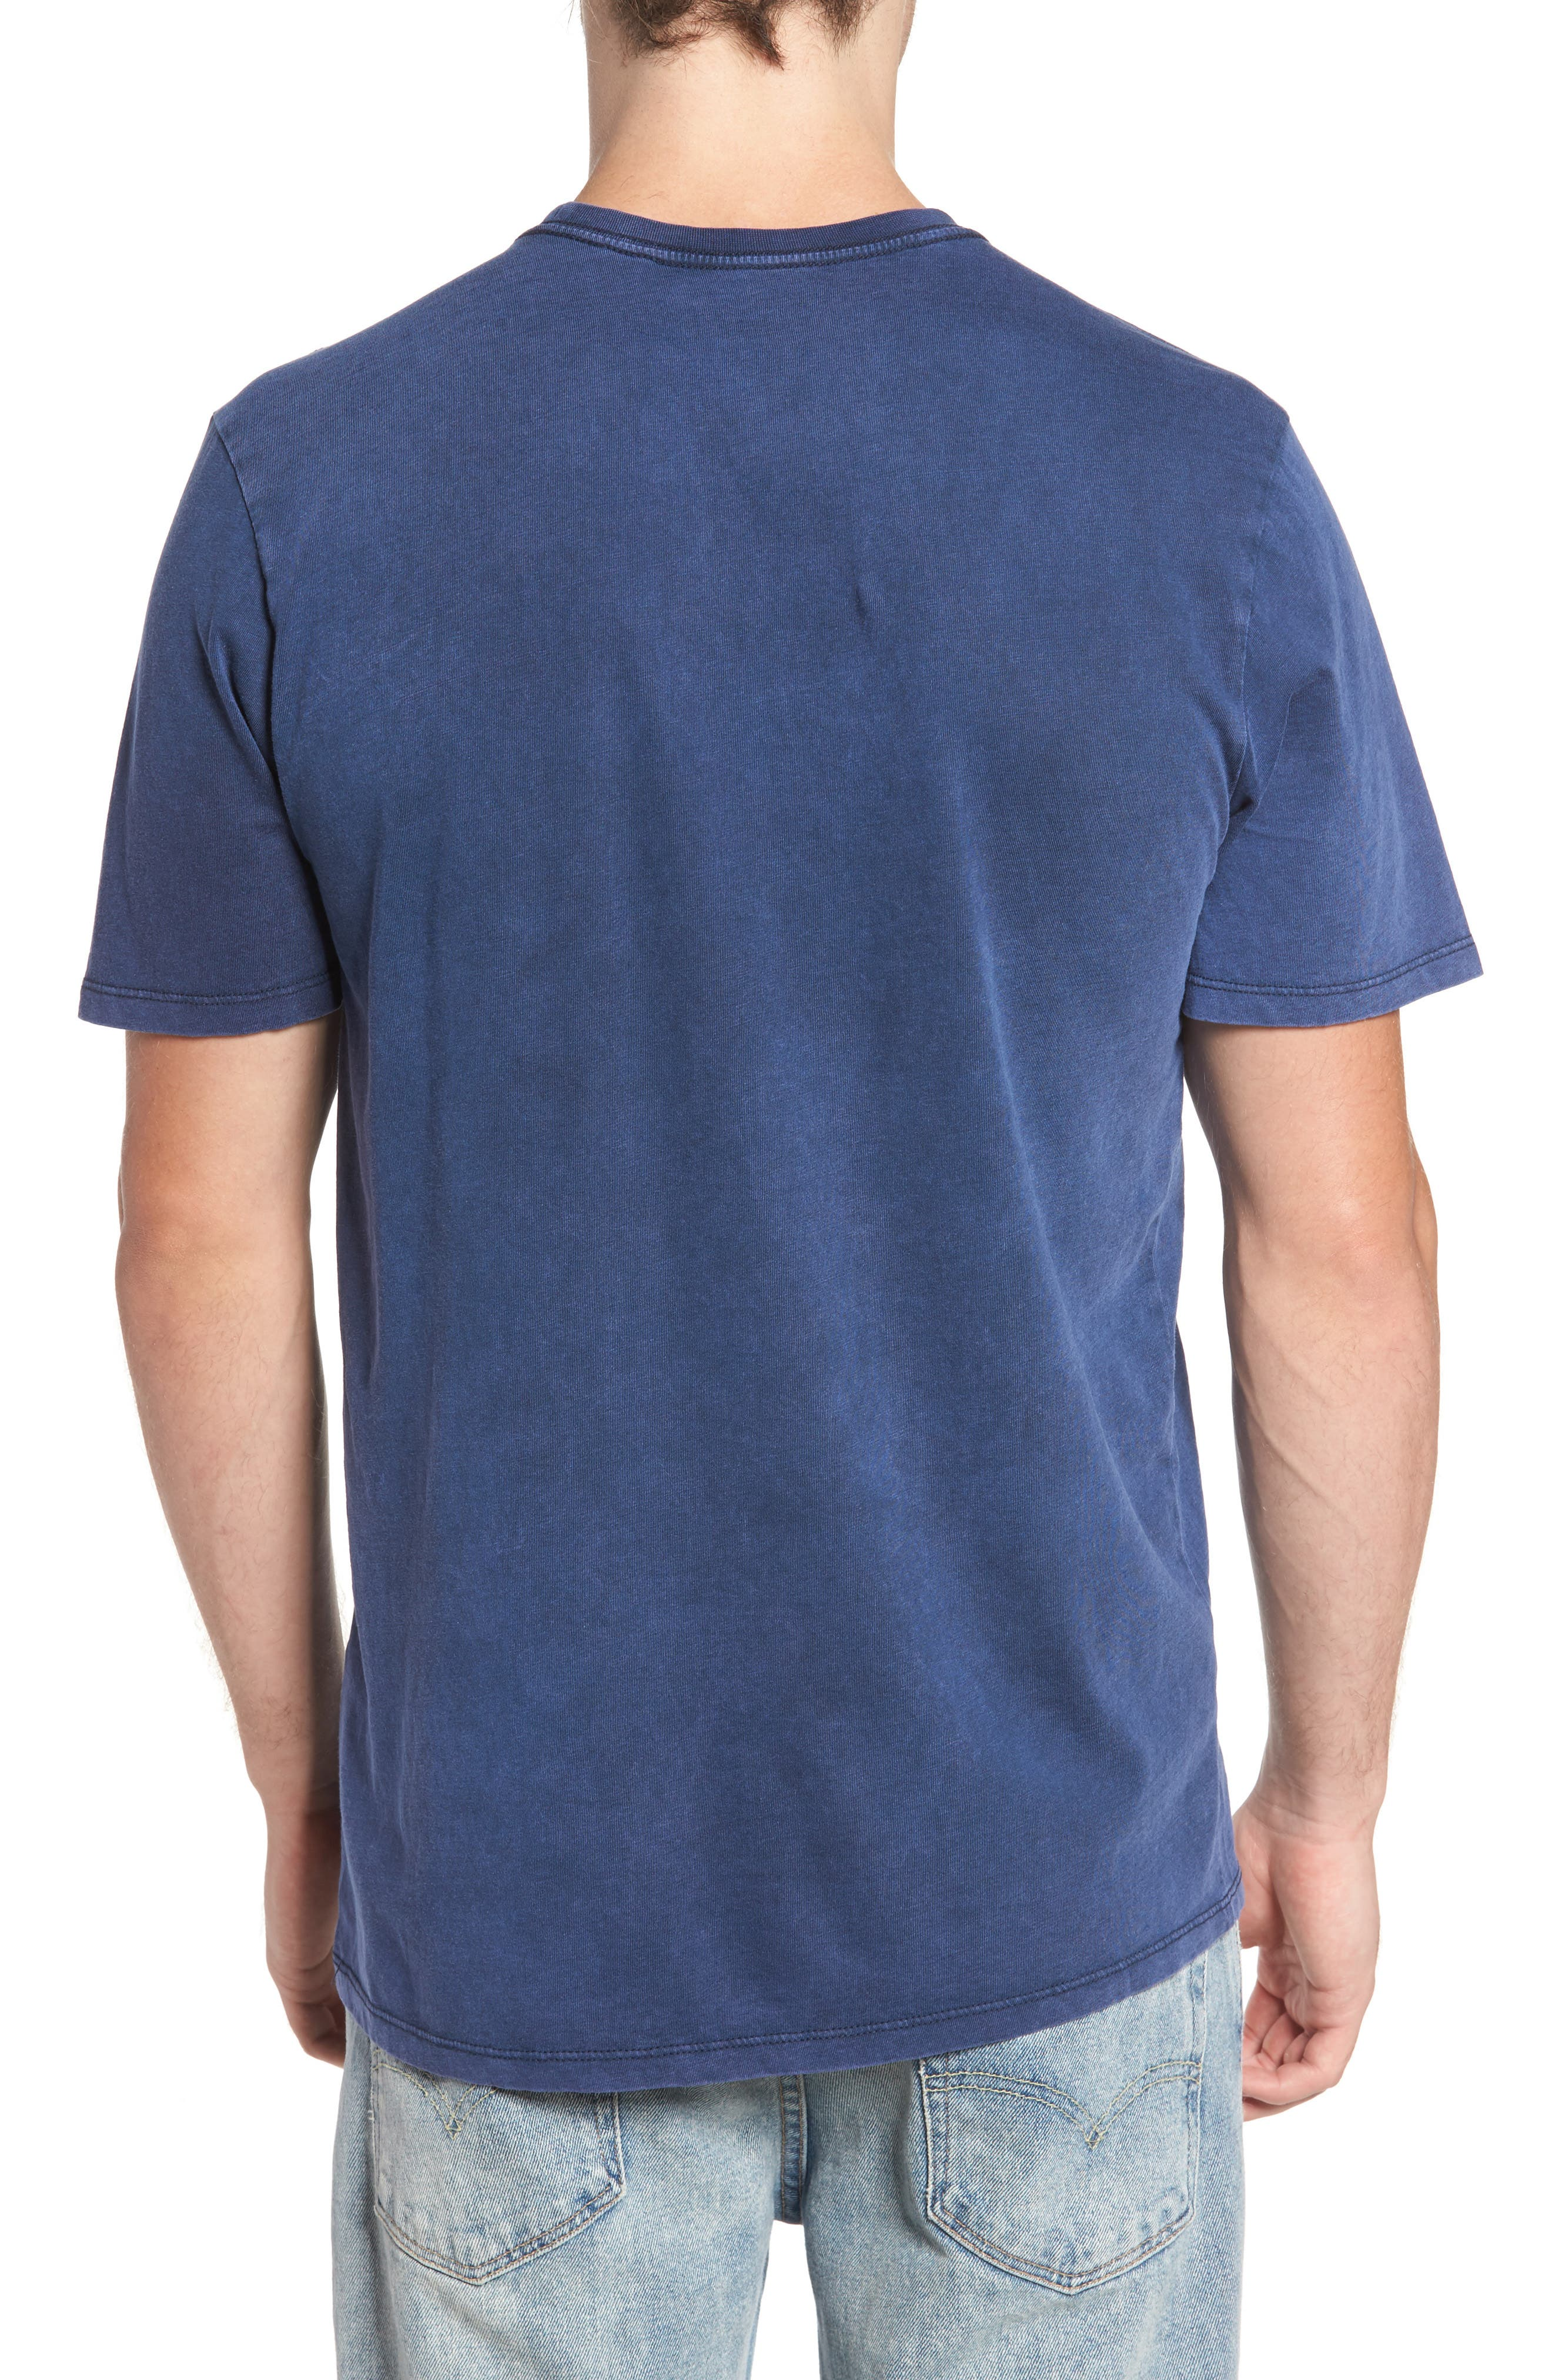 One and Only Acid Wash T-Shirt,                             Alternate thumbnail 2, color,                             419